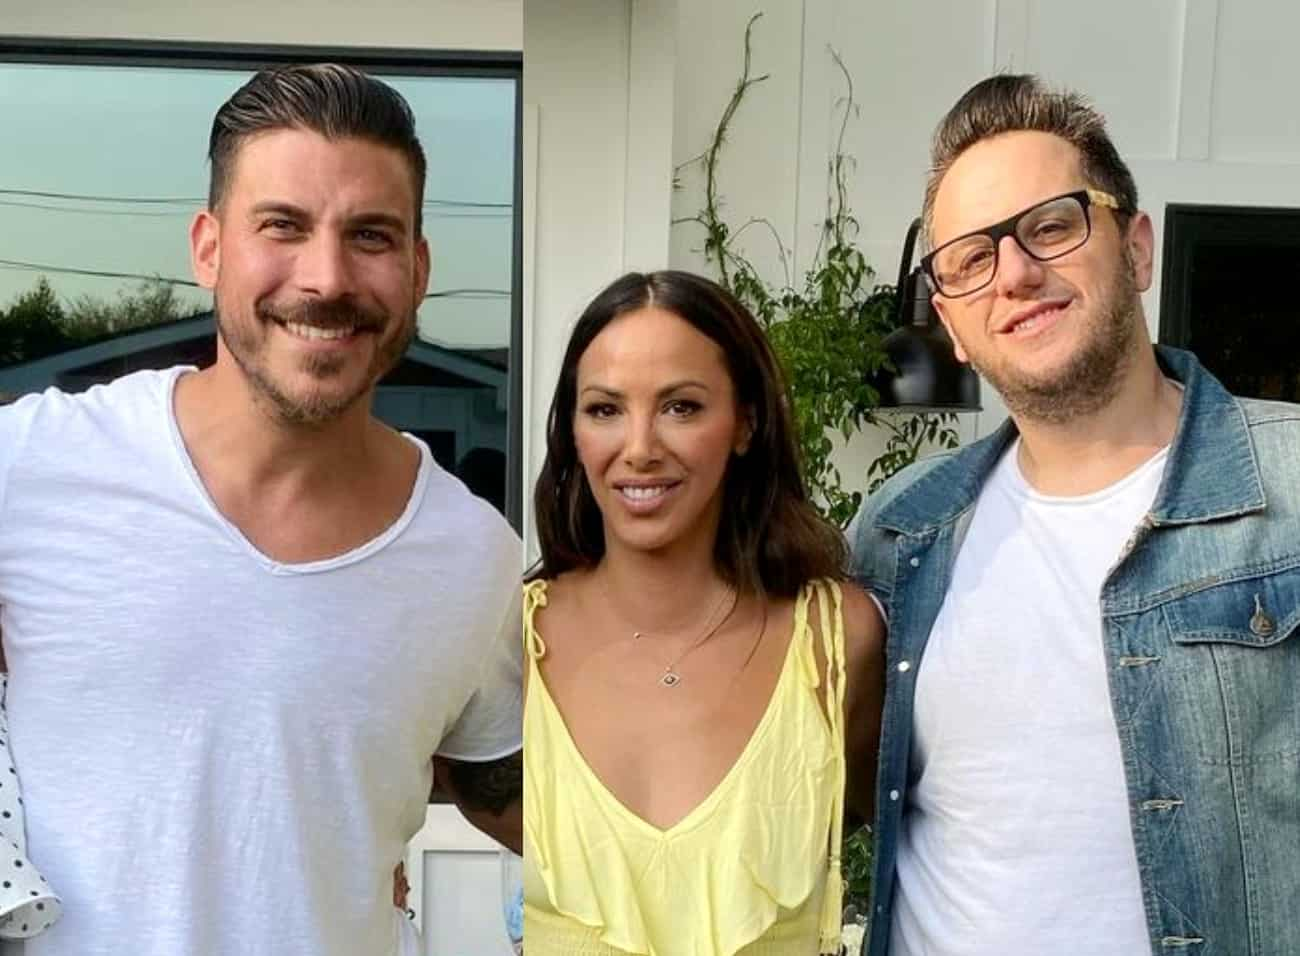 "Jax Taylor Reacts to Kristen's Boyfriend Dissing Bravo as ""Hypocrites"" and Admits He's Been Pretending to Work at SUR for Years After His Vanderpump Rules Exit, Says He's ""Too Old"" for Show as Kristen Reacts"